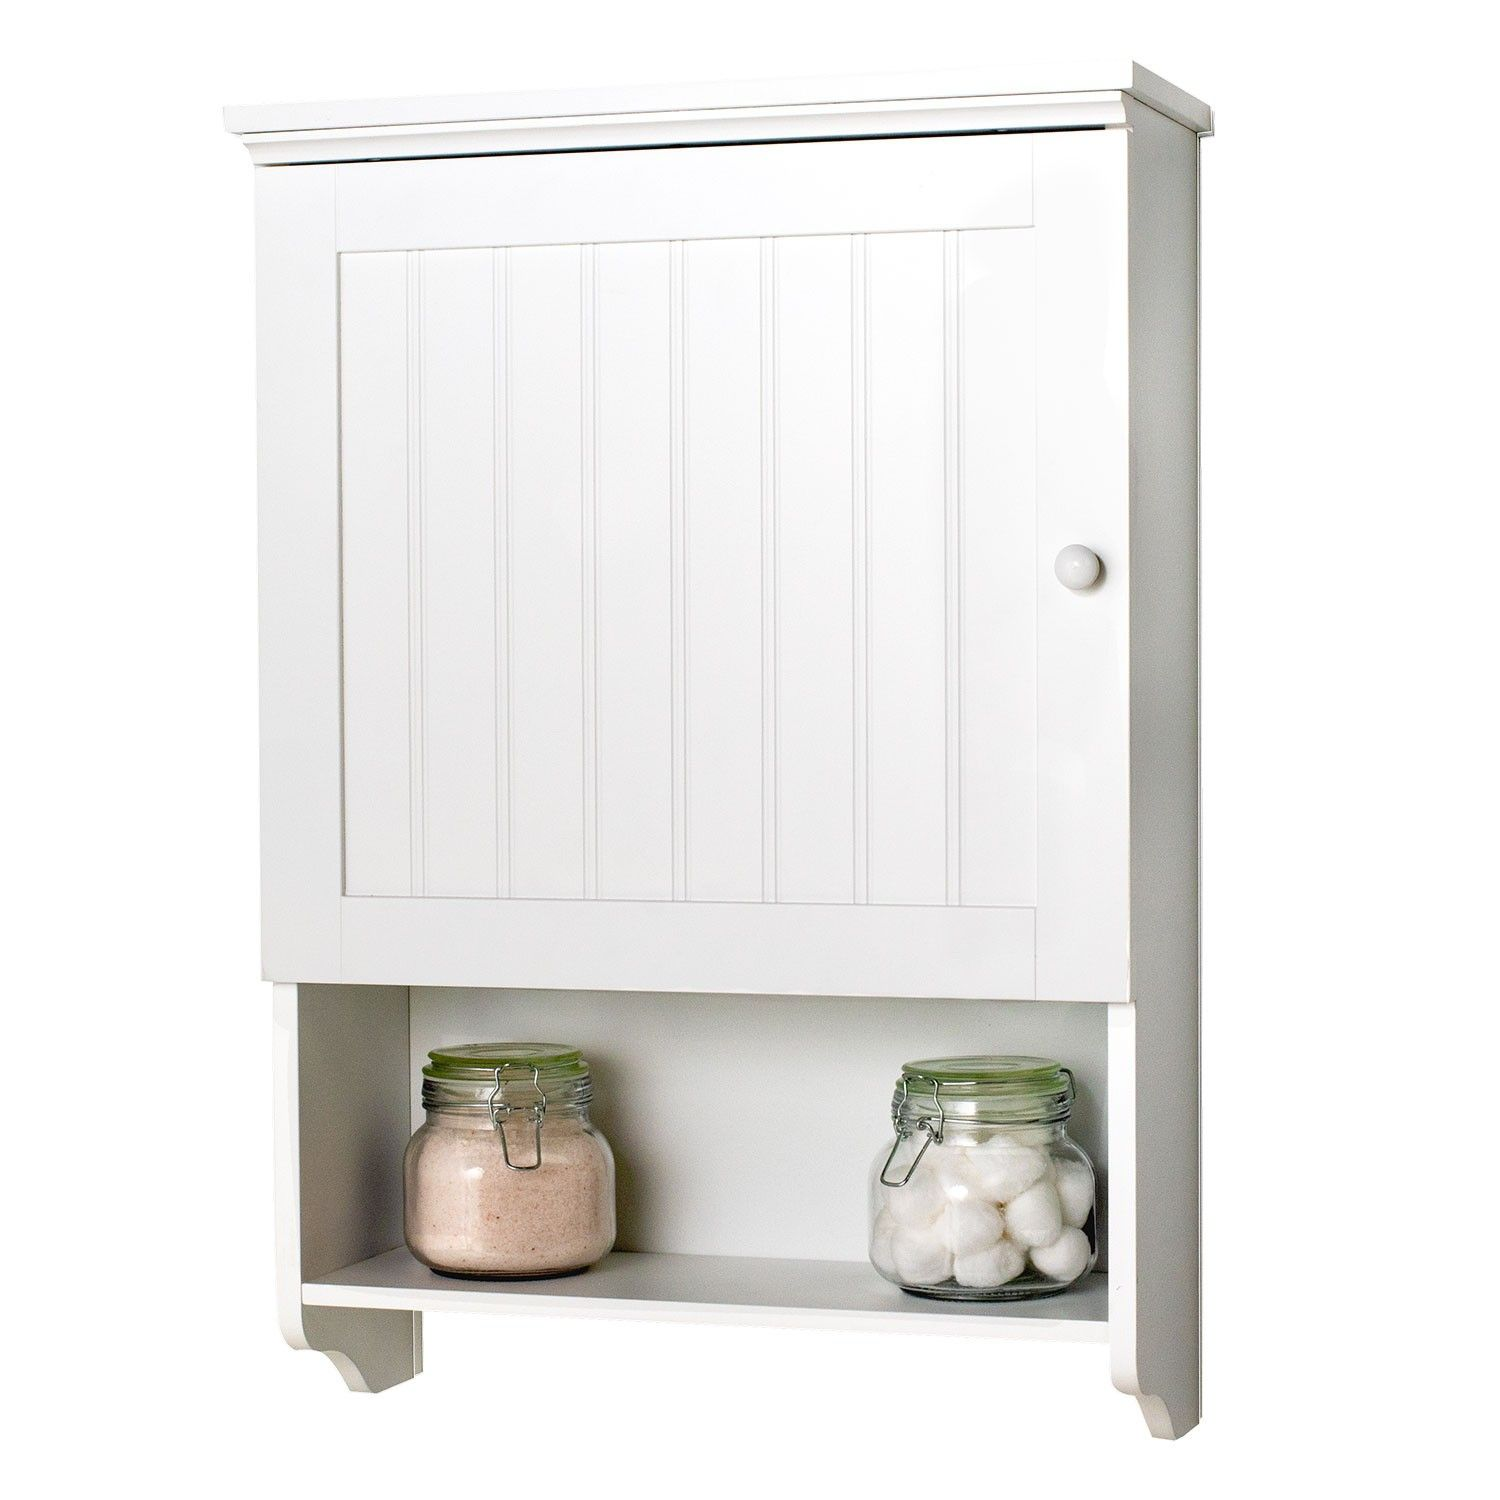 Bennington Country Cottage White Wall Mount Bathroom Medicine Cabinet Storage Organizer Bathroom Wall Storage Wall Storage Cabinets Bathroom Wall Storage Cabinets